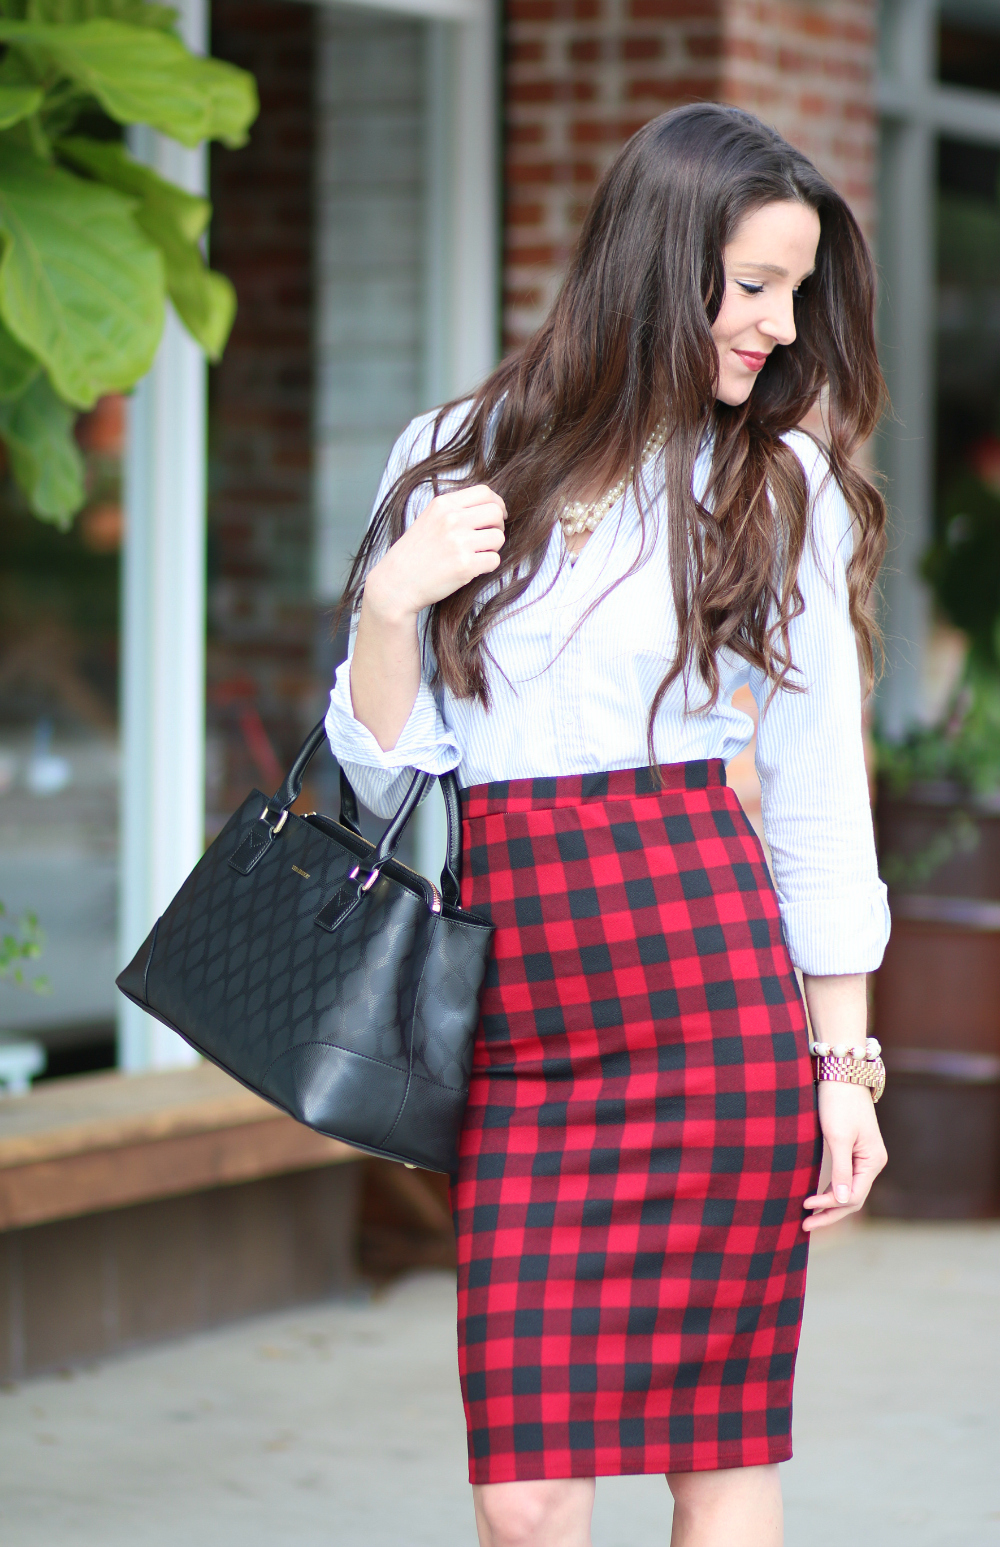 Red Plaid Pencil Skirt, Preppy Pencil Skirt, Plaid Pencil Skirt, St. Ives Oatmeal, St. Ives Radiance Boost Bowl, St. Ives Nourish & Soothe Oatmeal & Shea Butter Body Lotion, St. Ives Nourished & Smooth Oatmeal Body Scrub,